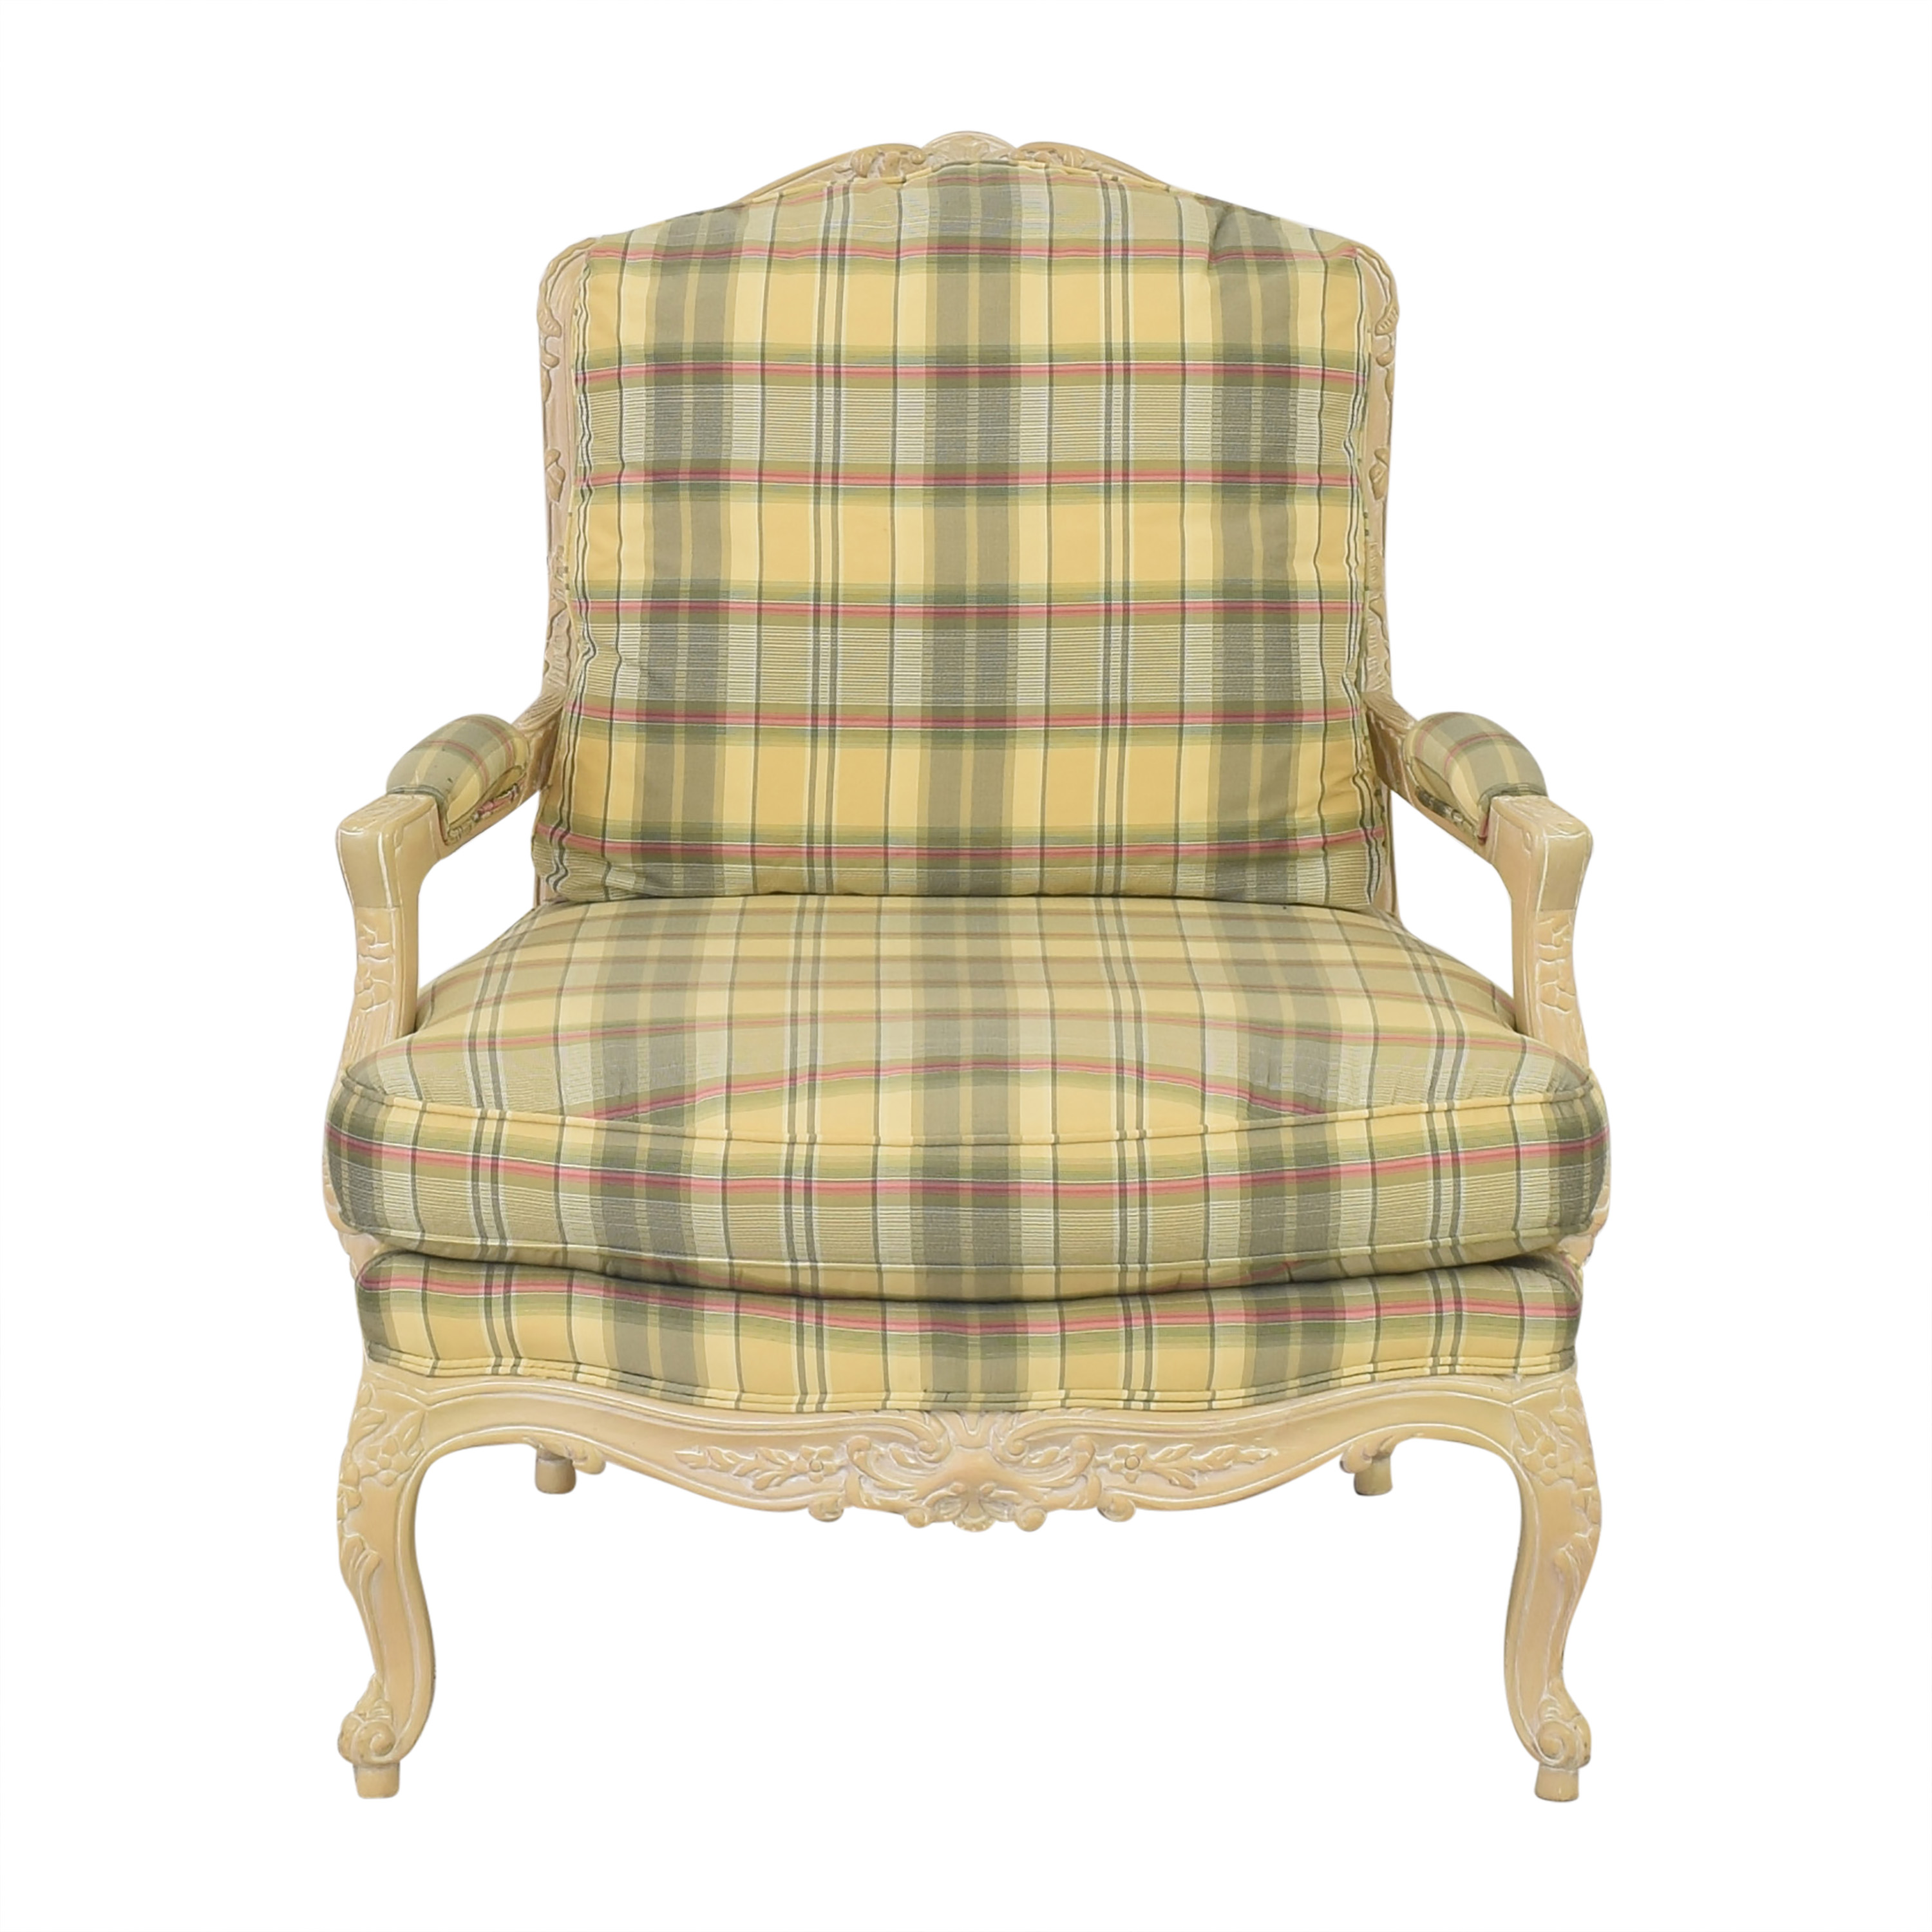 Sherrill Furniture Sherrill Furniture Bergere Style Chair Chairs